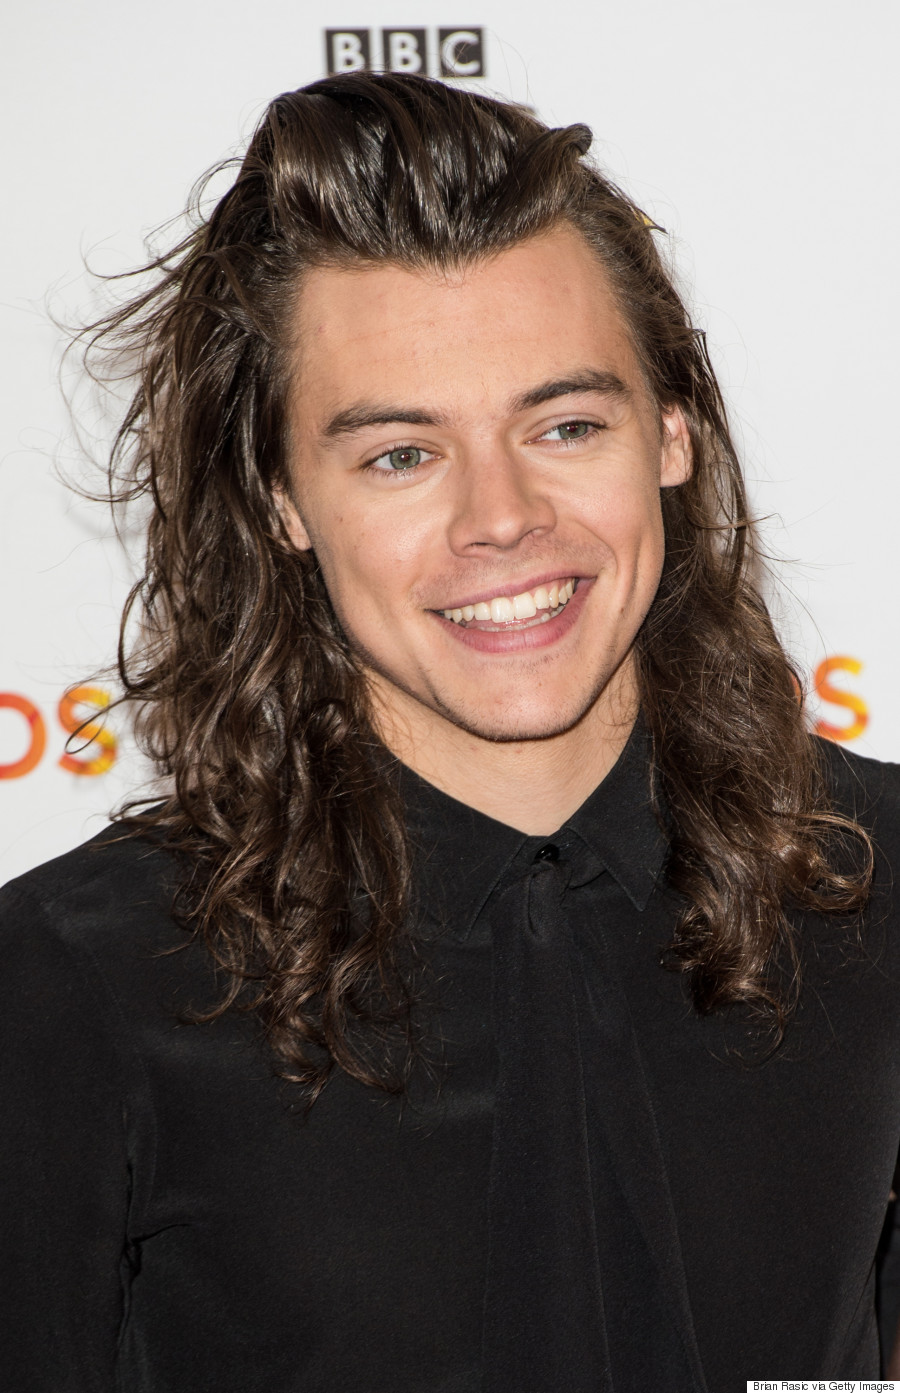 Harry Styles Has Cut His Long Hair For Charity, Here's What He Could ...